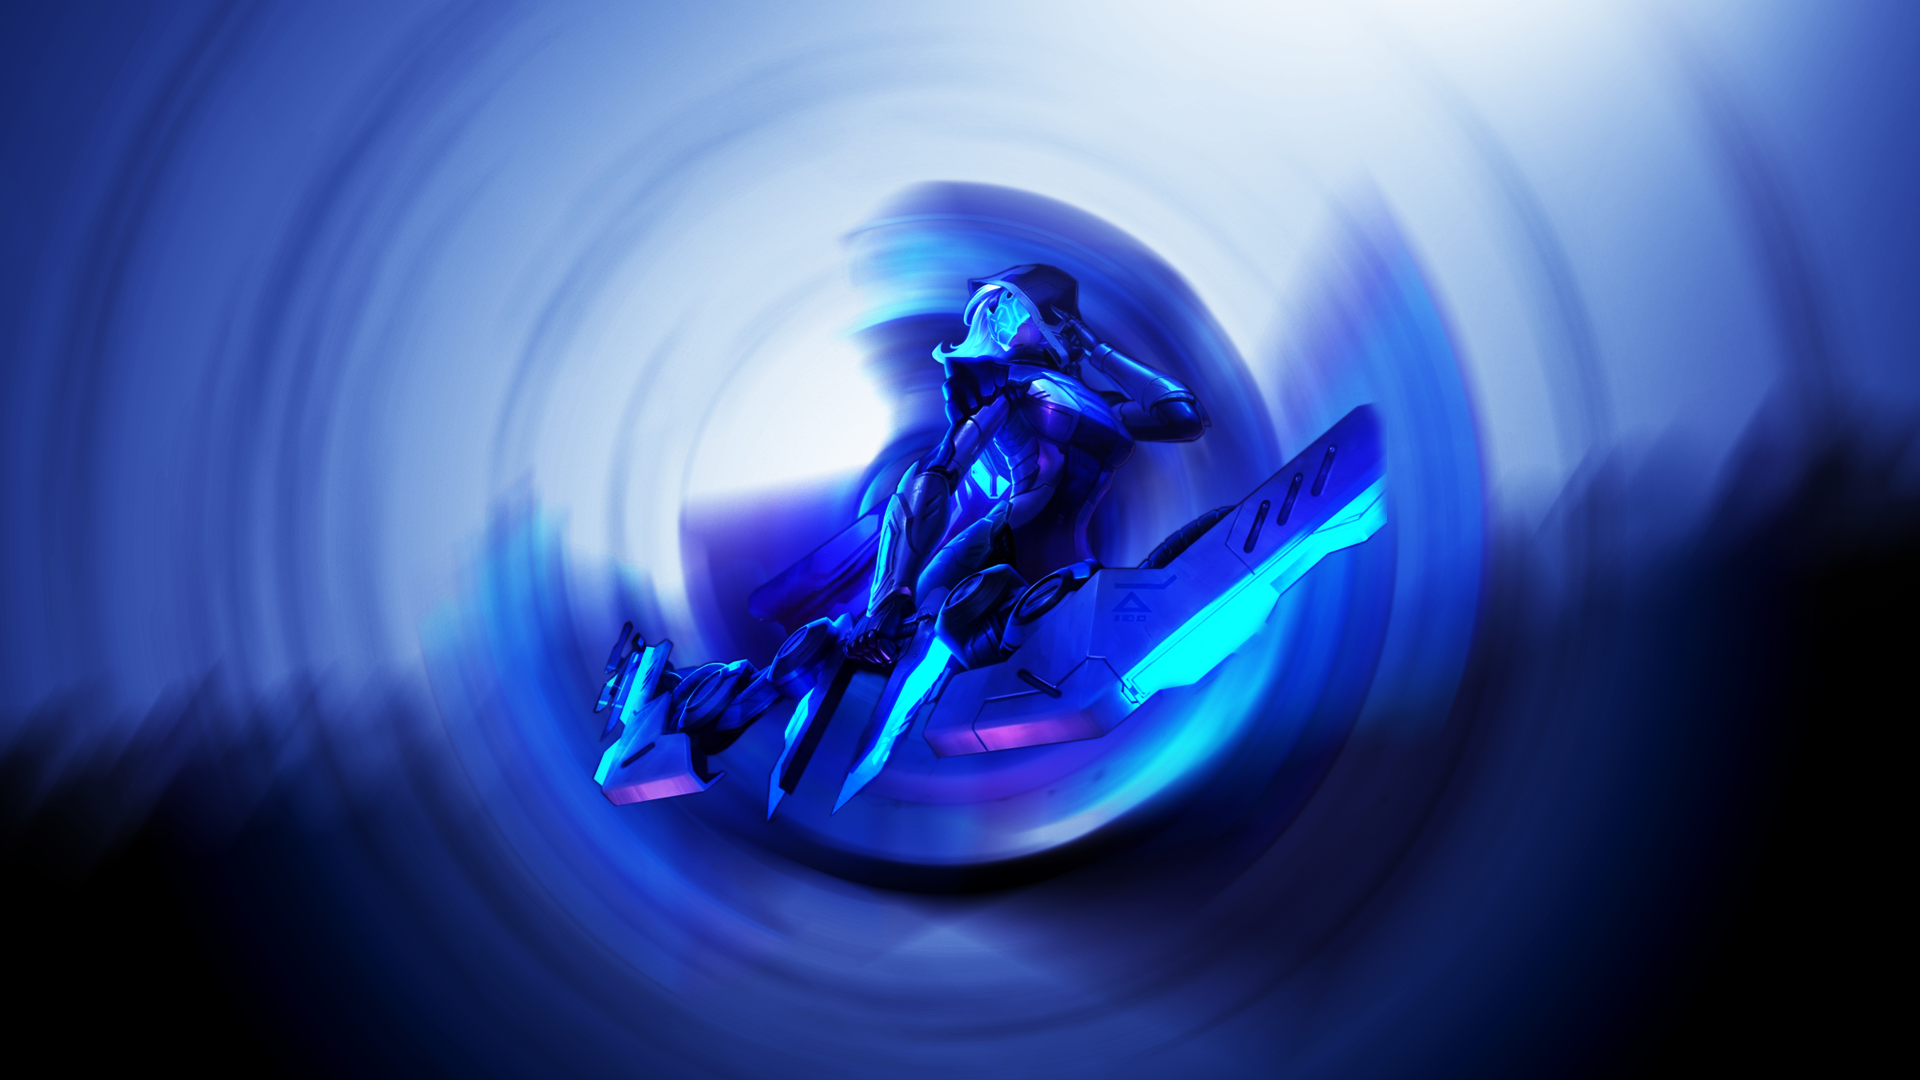 Project Ashe League Of Legends Wallpaper By Jornix On Deviantart